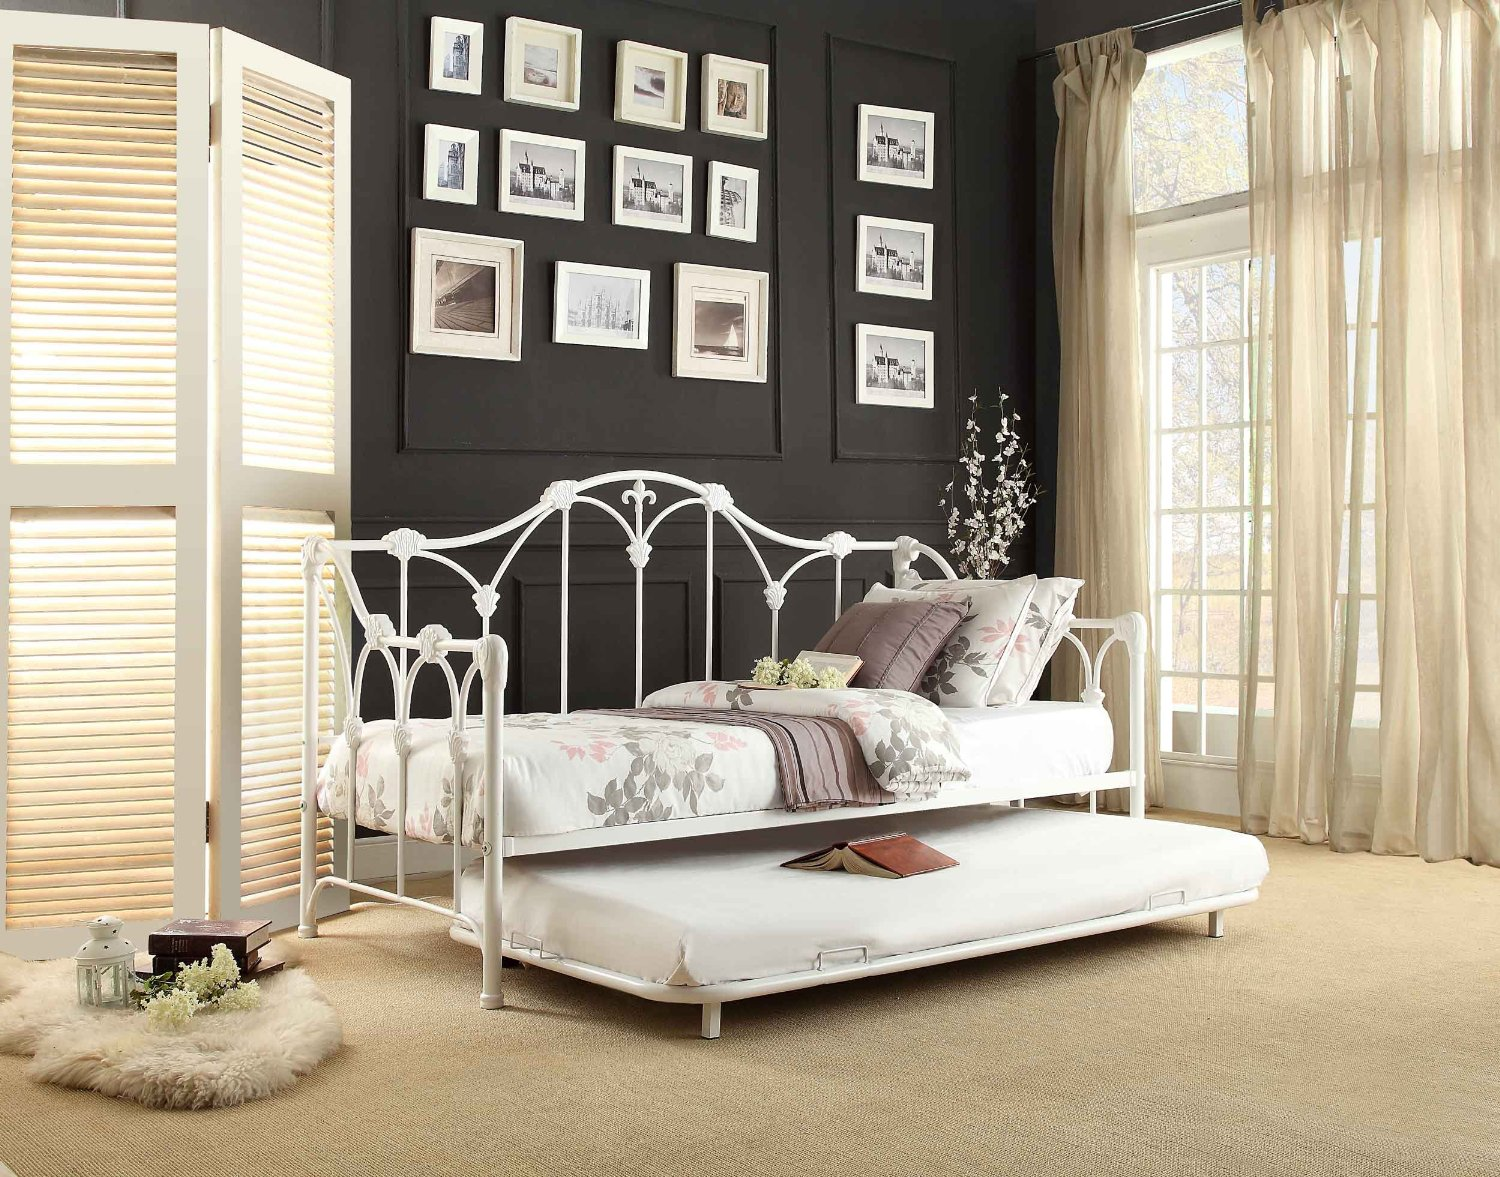 White Metal Frame Daybed with Trundle: Roll Out & Pop Up Trundles